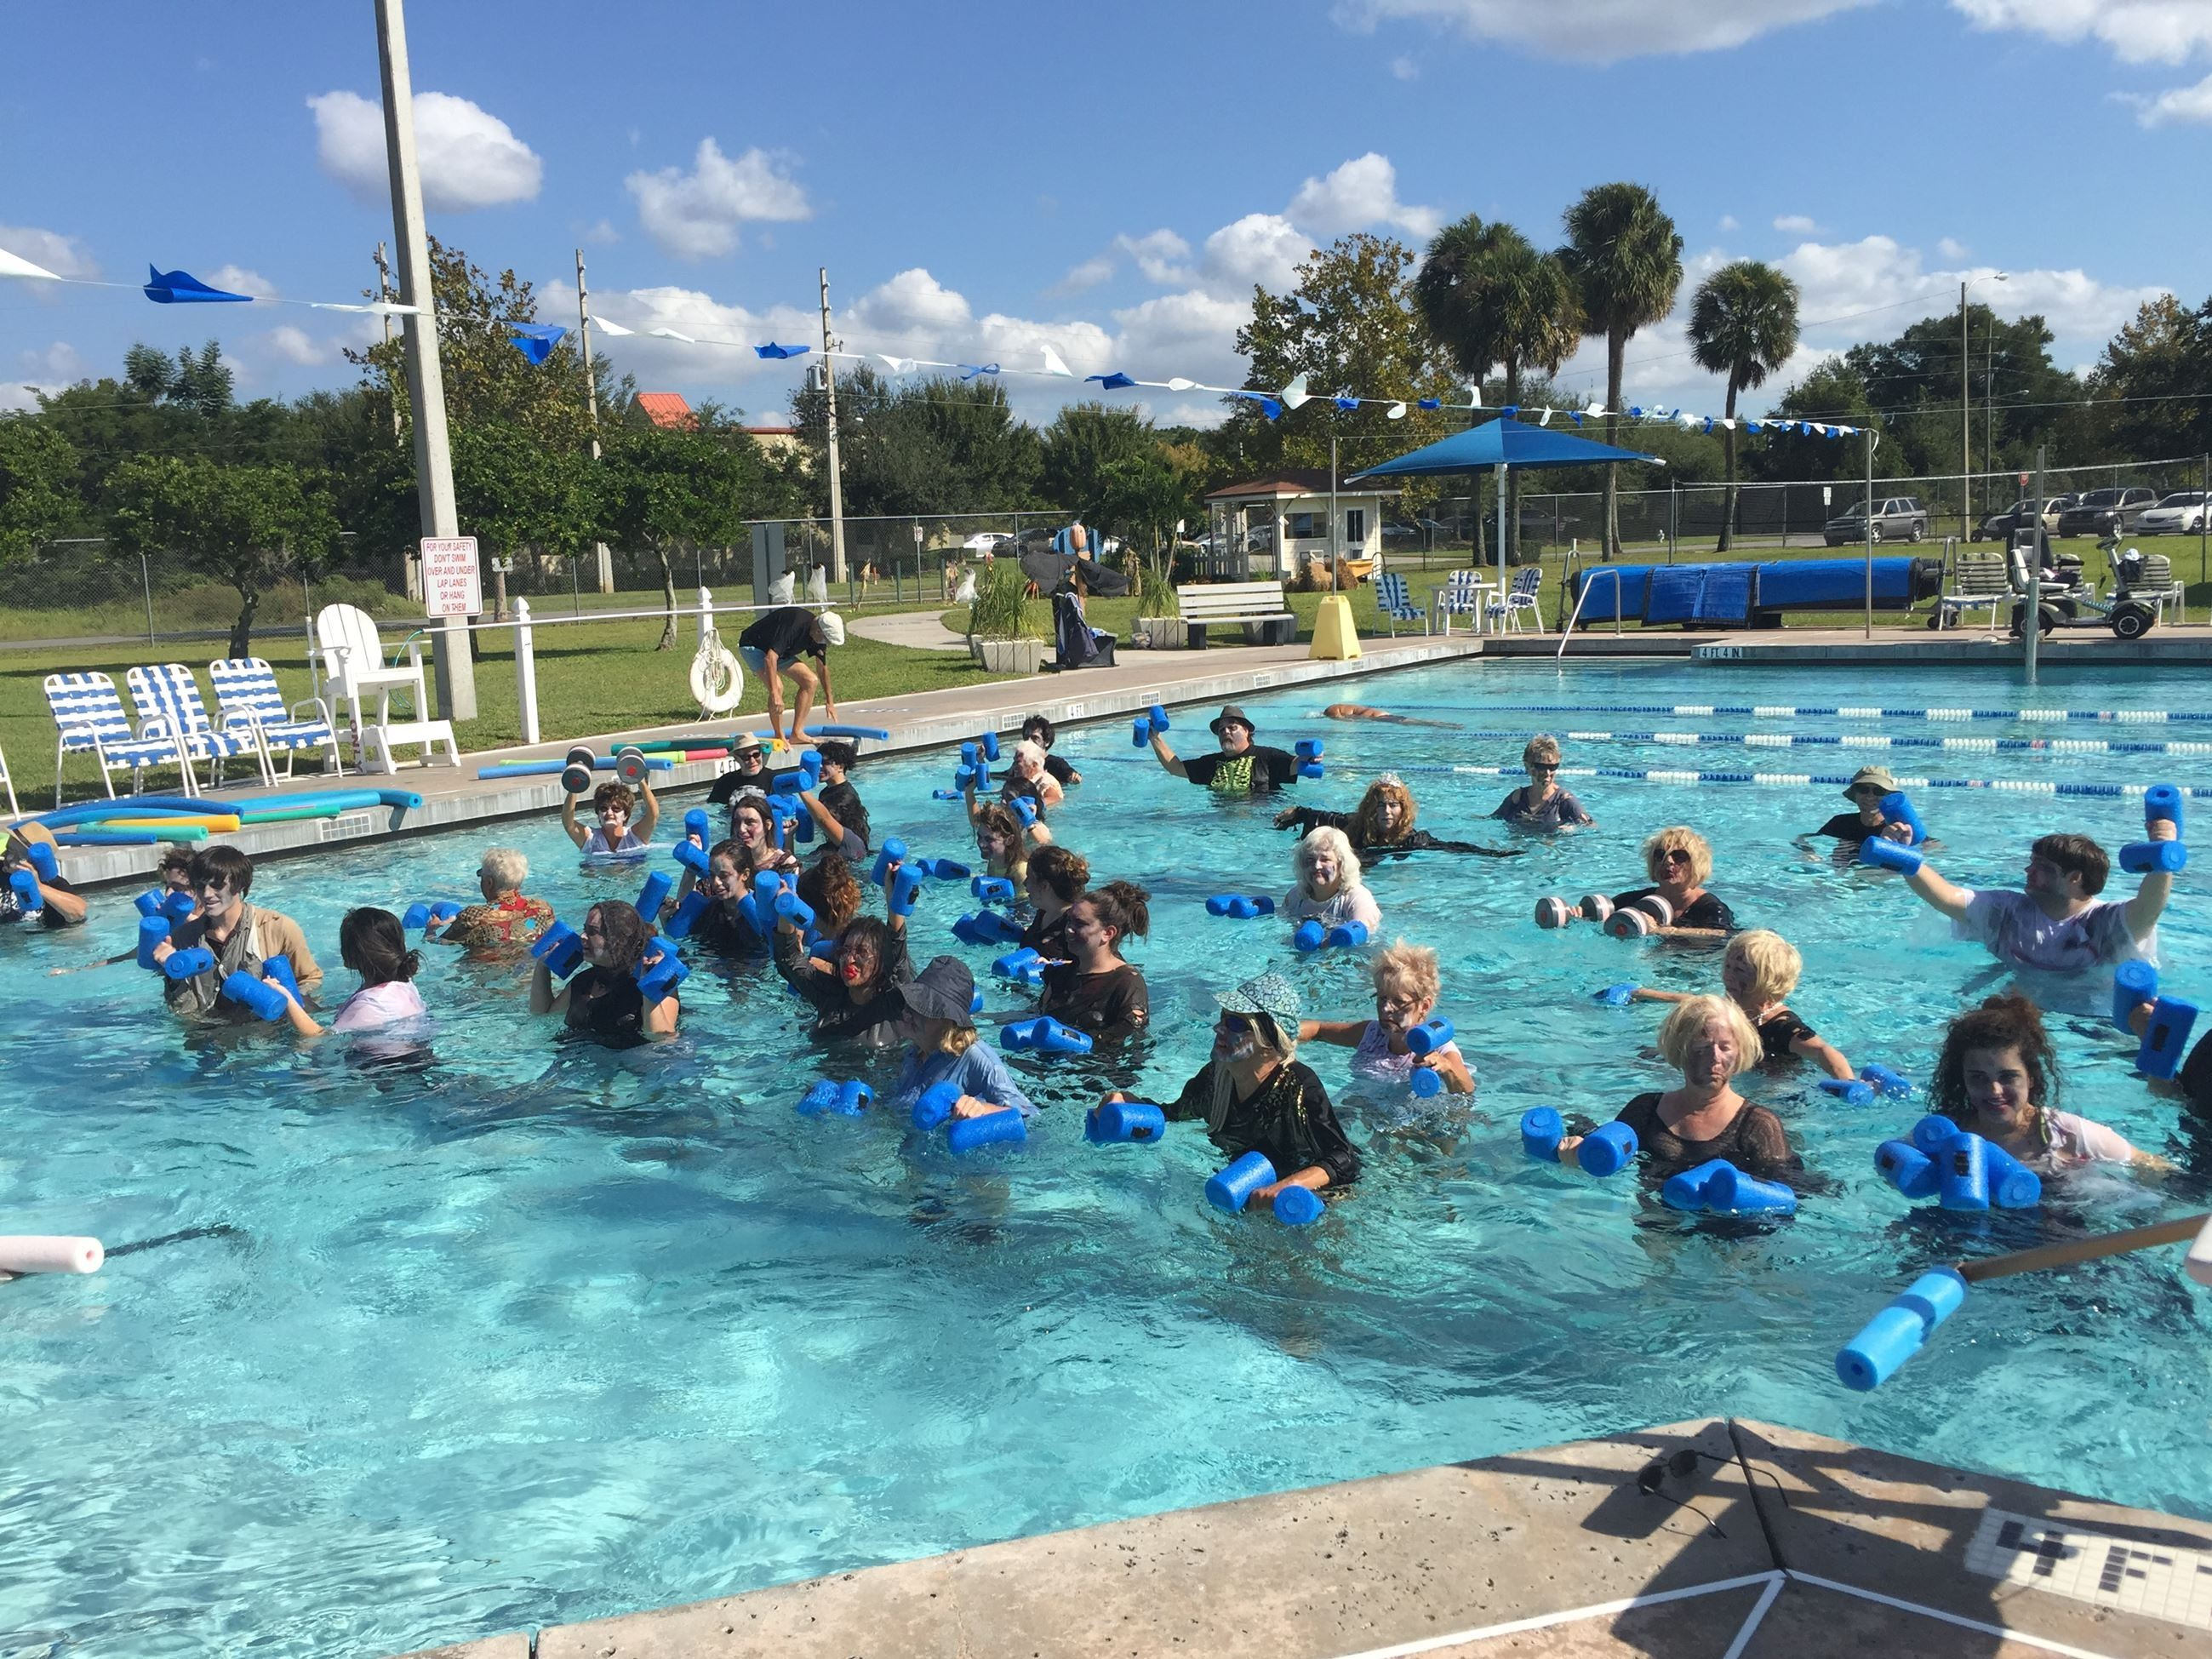 PHOTO OF AQUAFIT CLASS SESSION AT THE POOL